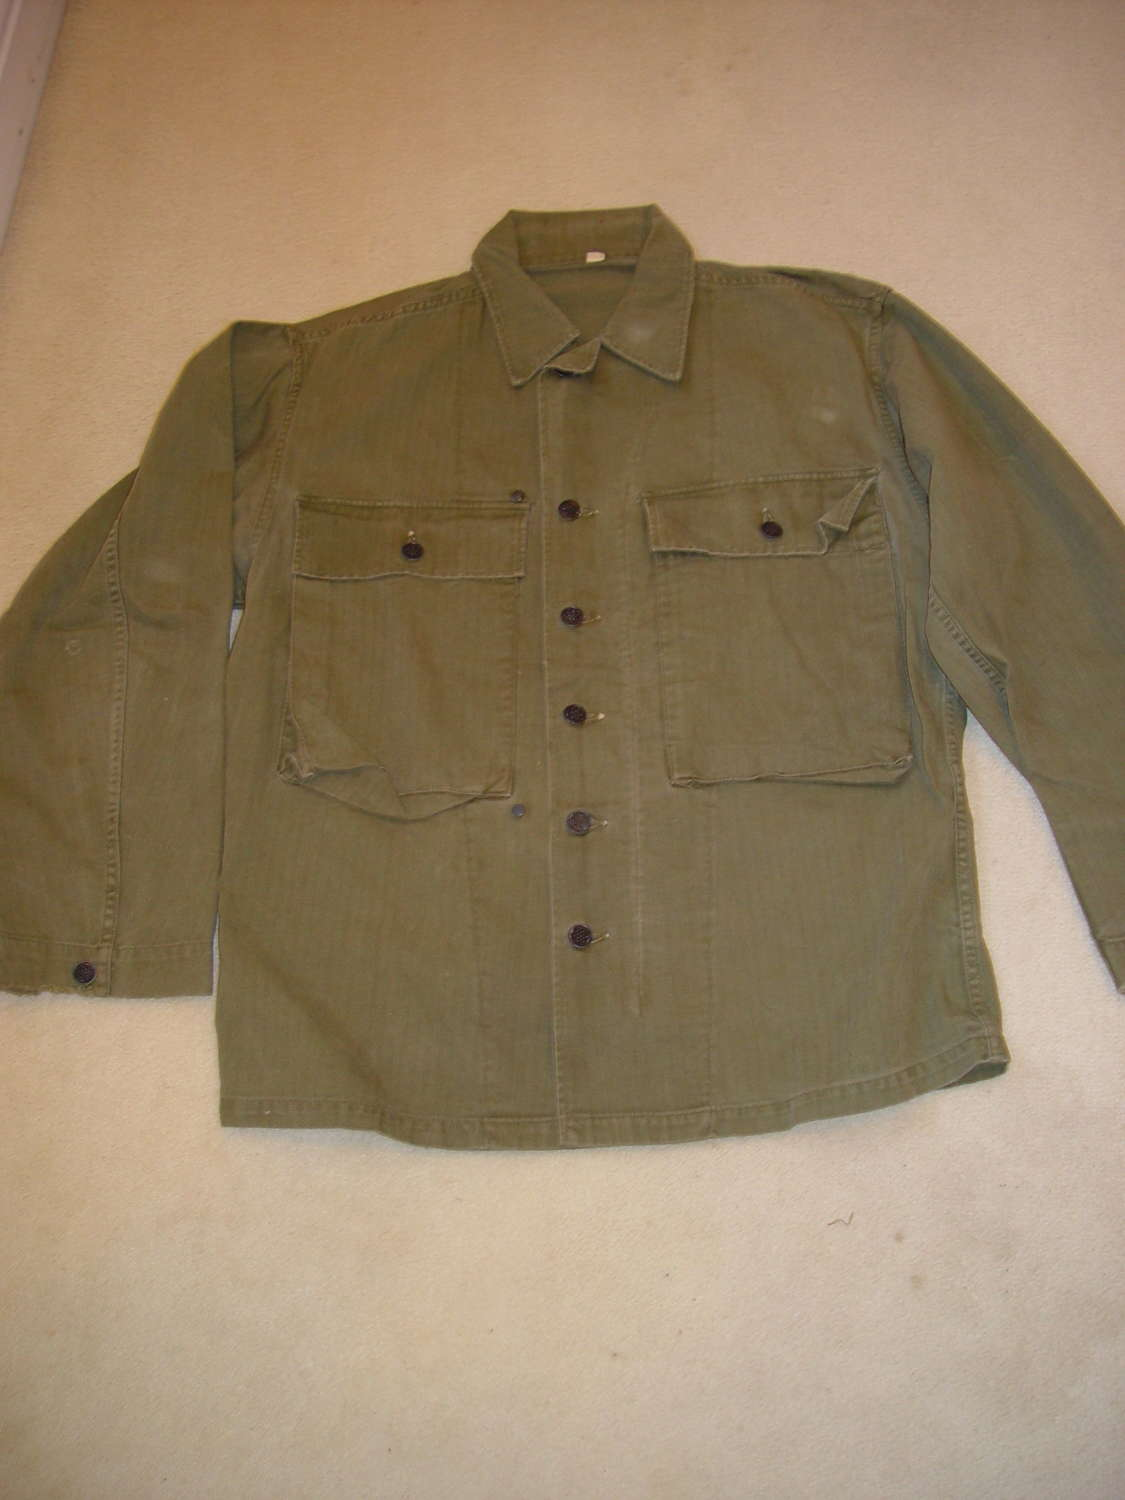 US Army HBT jacket